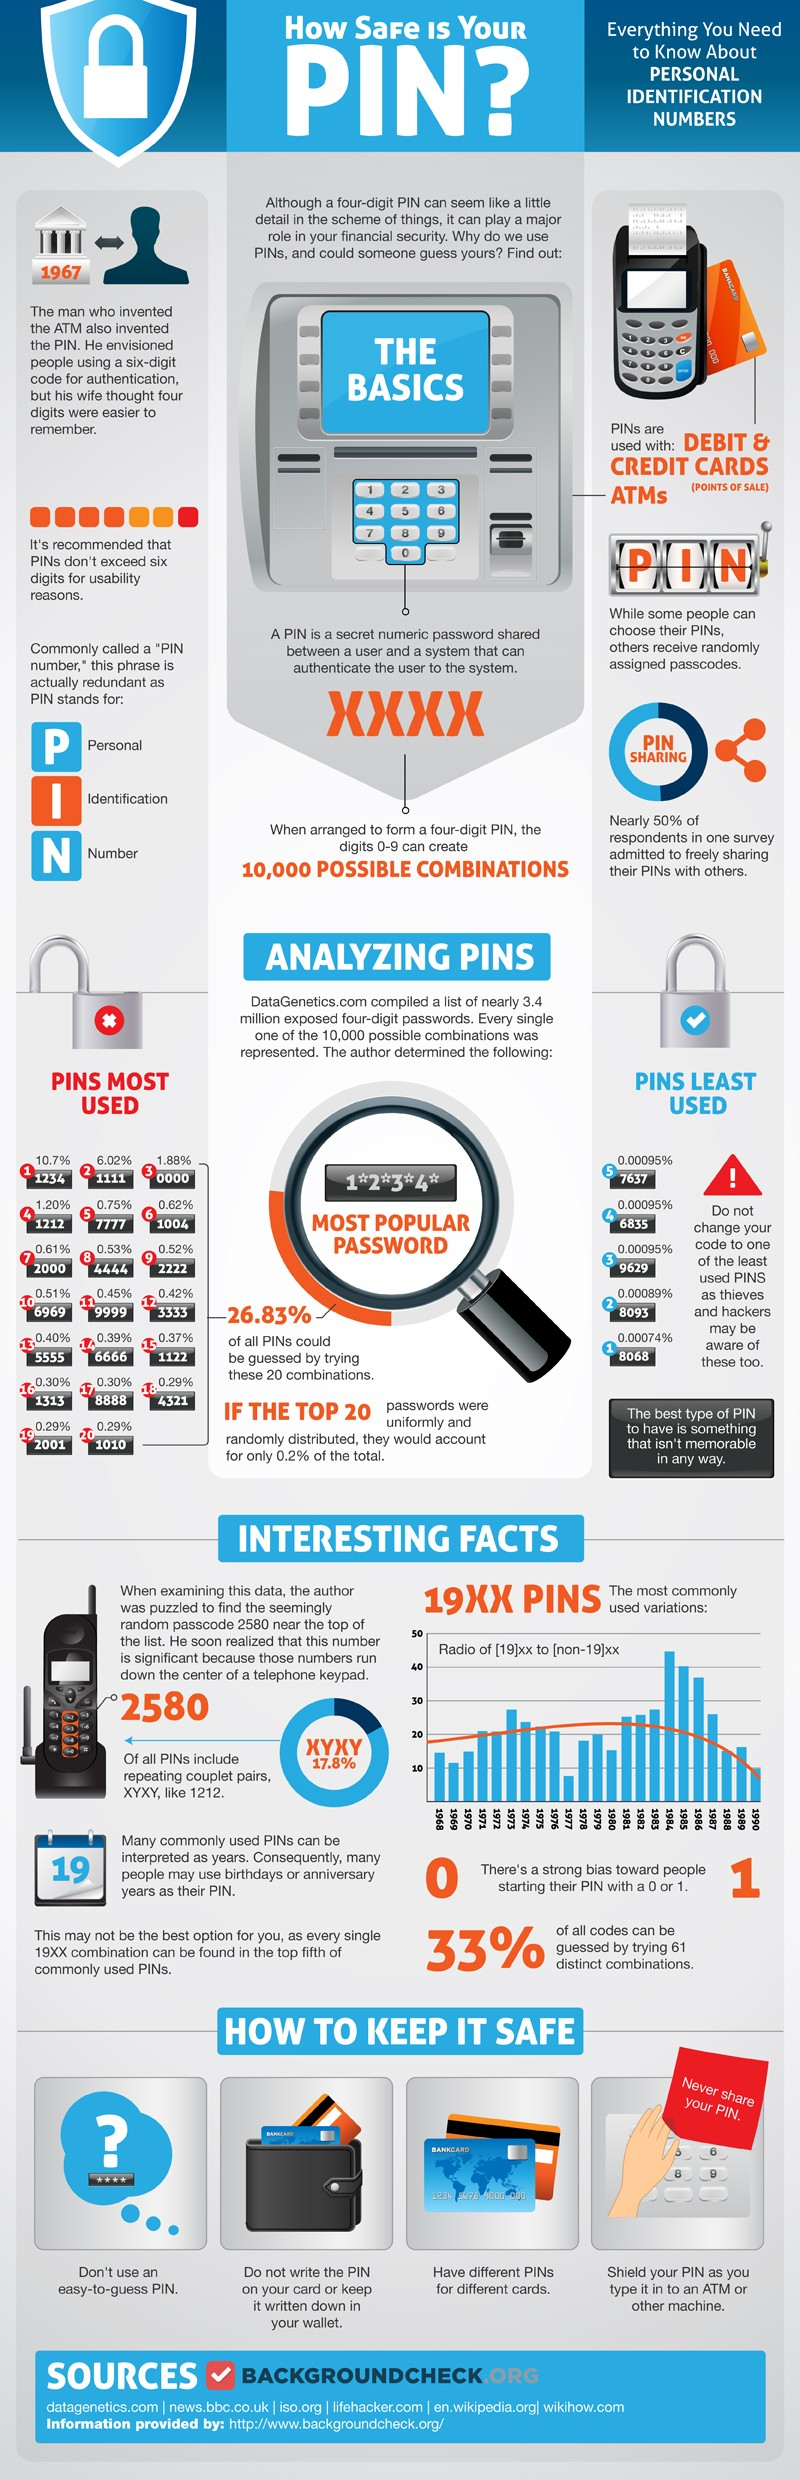 PIN Security-Infographic